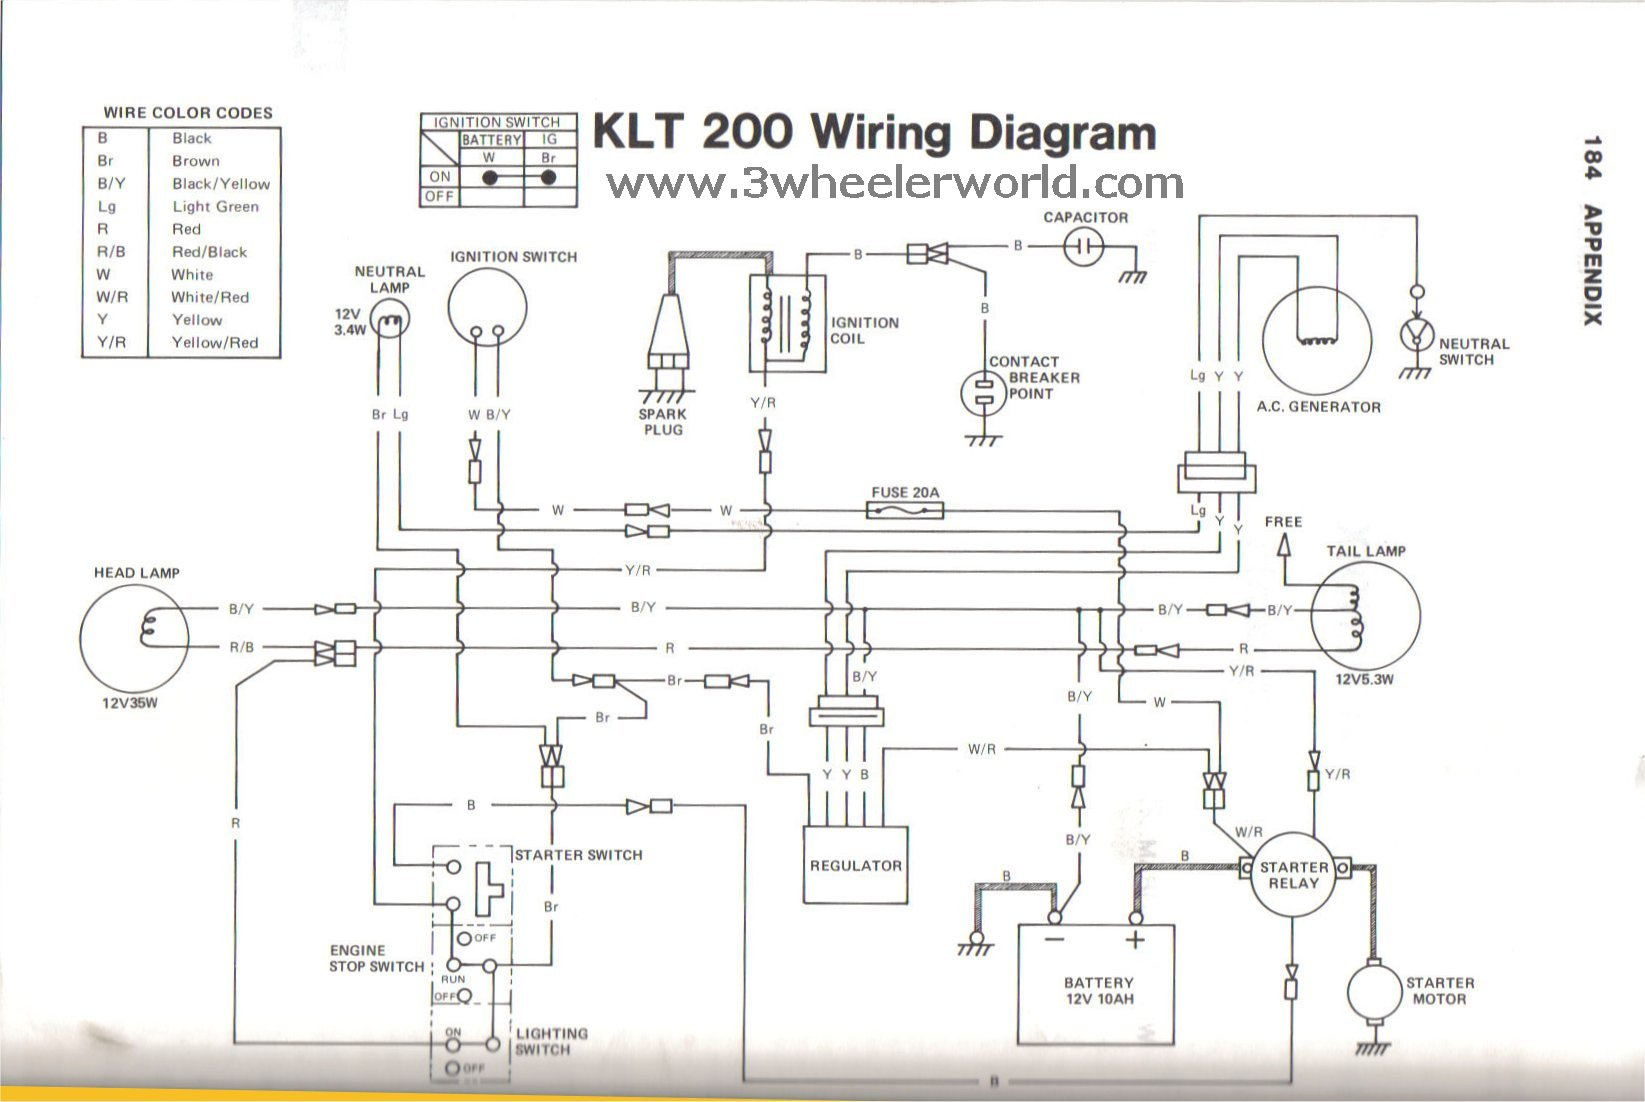 Cc Wheeler Wiring Diagram on 110cc four wheeler, 110cc go kart engine, reversible ac motor wiring diagram, 110cc wiring harness, scooter wiring diagram, gy6 regulator wiring diagram, chinese atv engine diagram, 5 pin cdi wire diagram, atv wiring diagram, headlight wiring diagram, chinese atv parts diagram, chinese 4 wheeler parts diagram, 110cc wire harness diagram, 110cc pocket bike parts, tao tao 110 wiring diagram, 110cc go cart diagram, baldor motor capacitor wiring diagram, 110cc dirt bike, 4 pin cdi wiring diagram, 50cc gas scooter engine diagram,